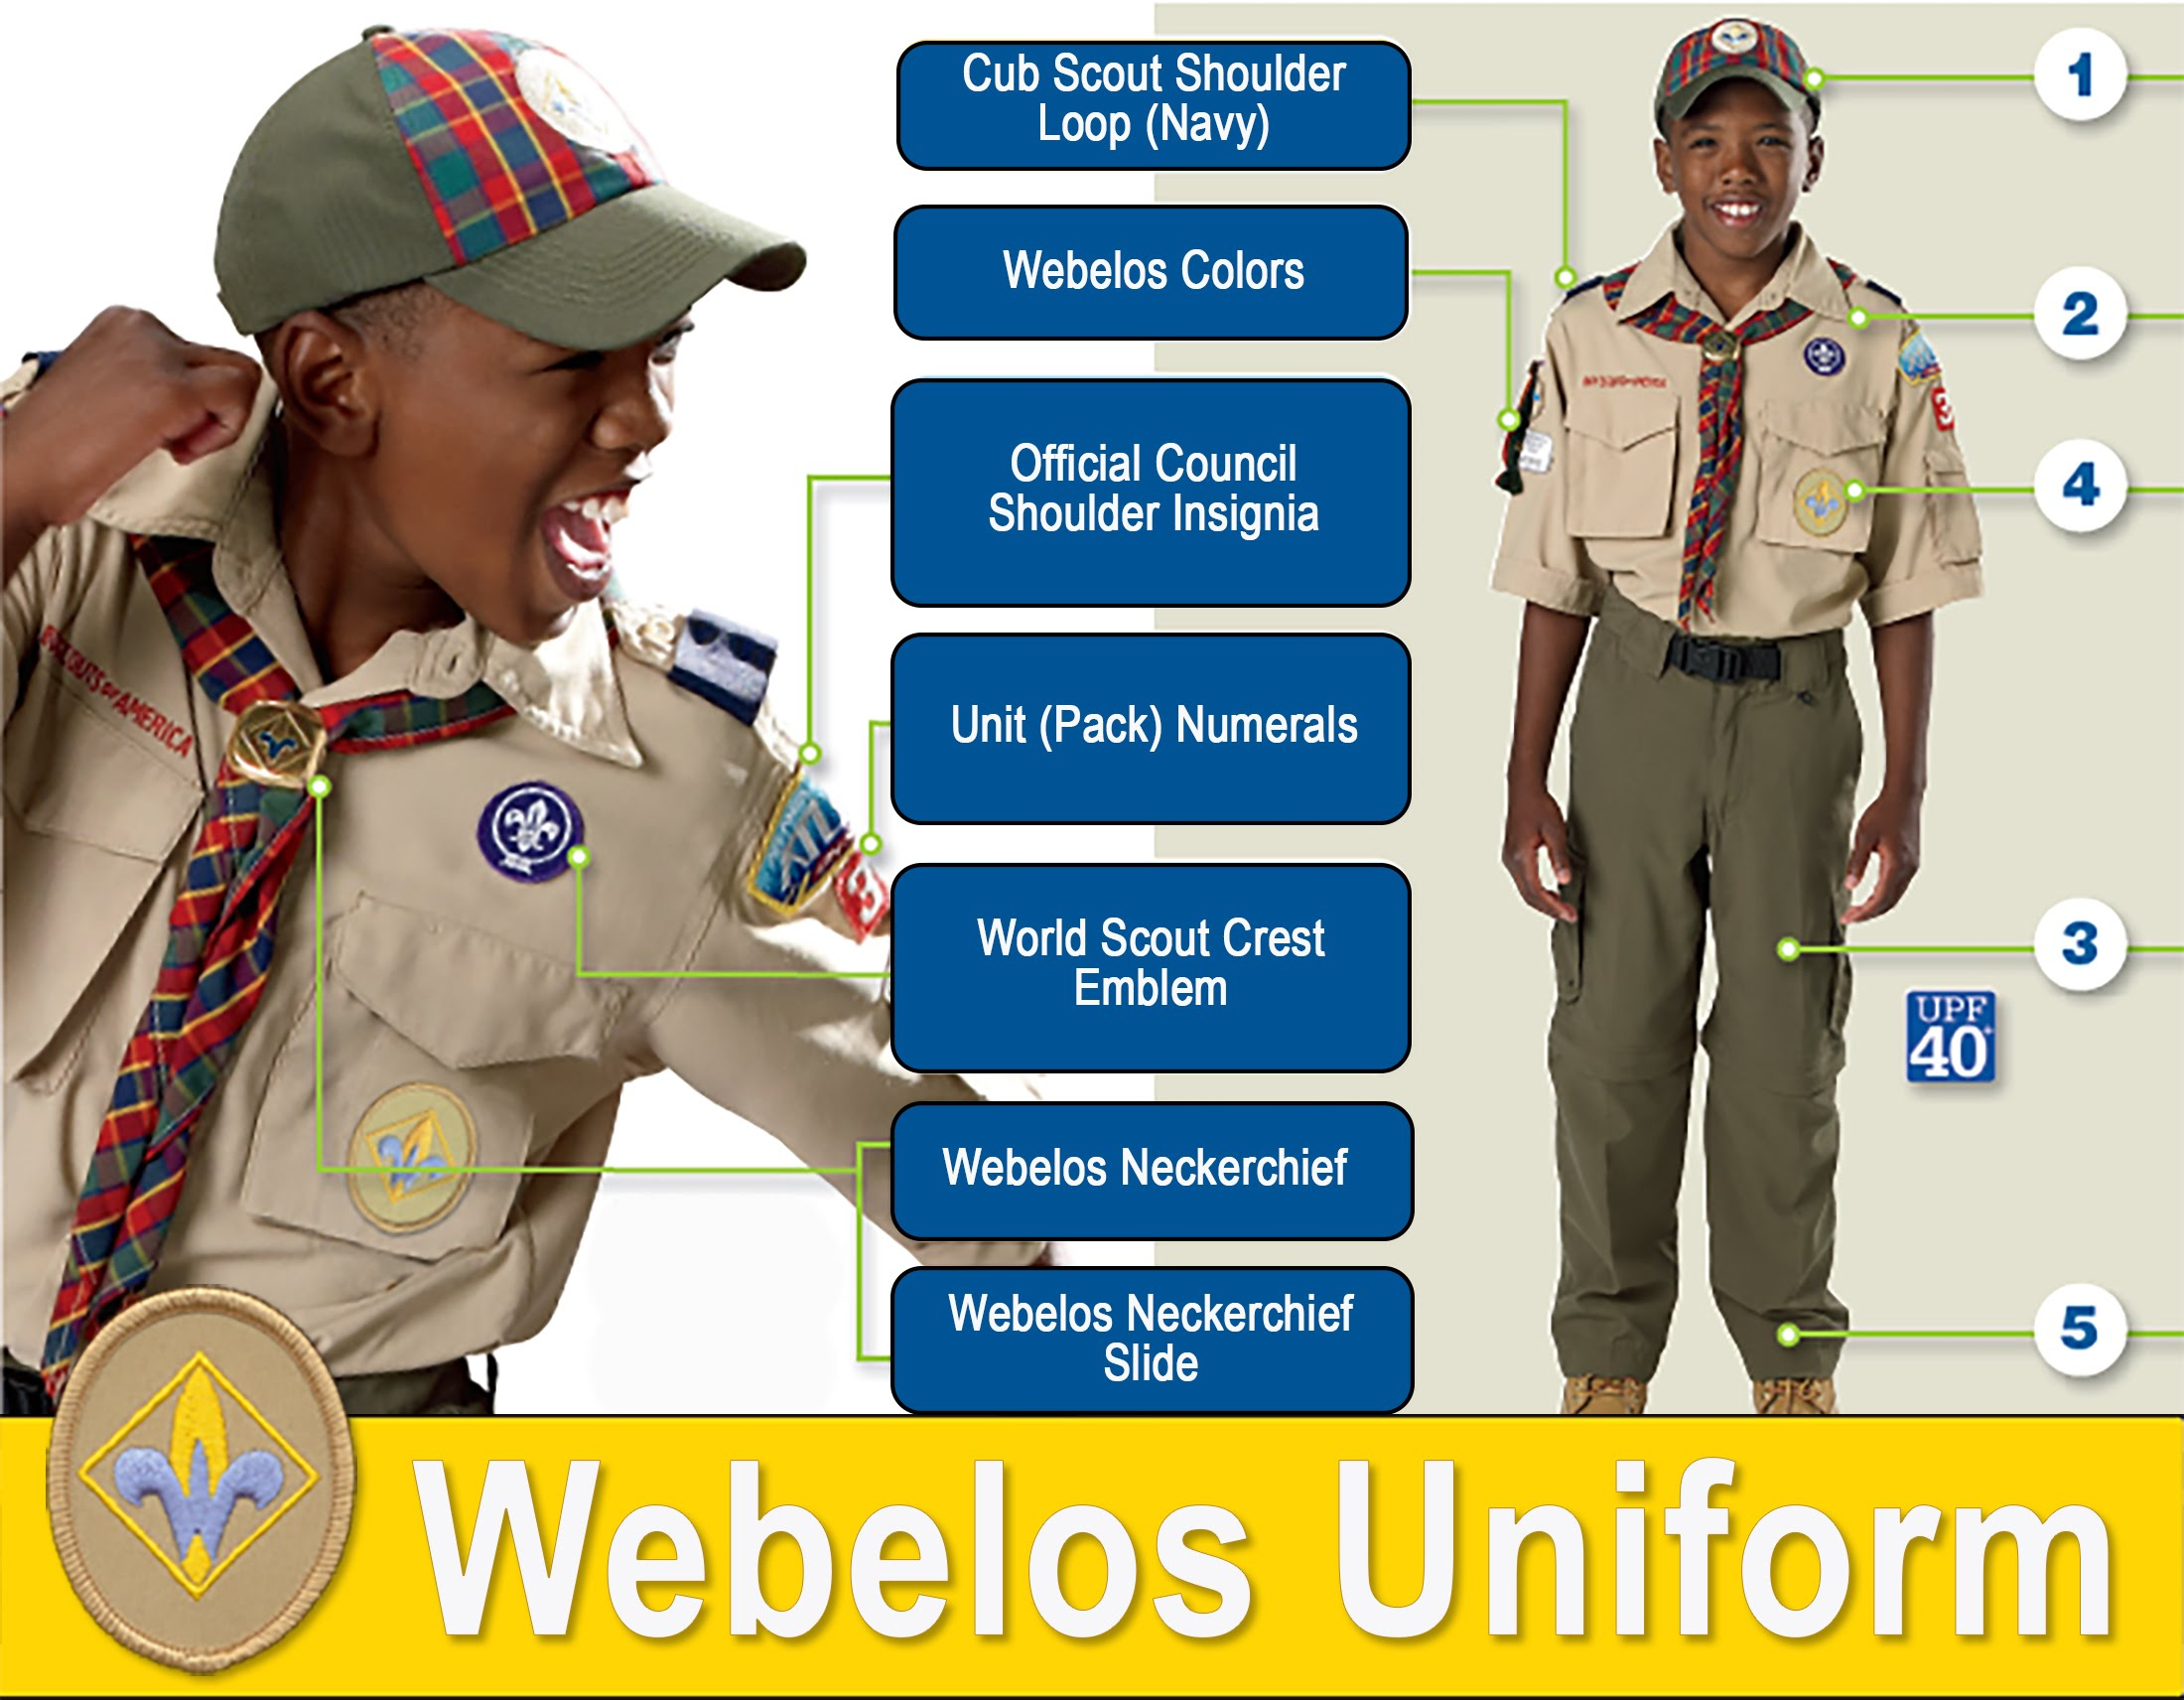 The Webelos Uniform